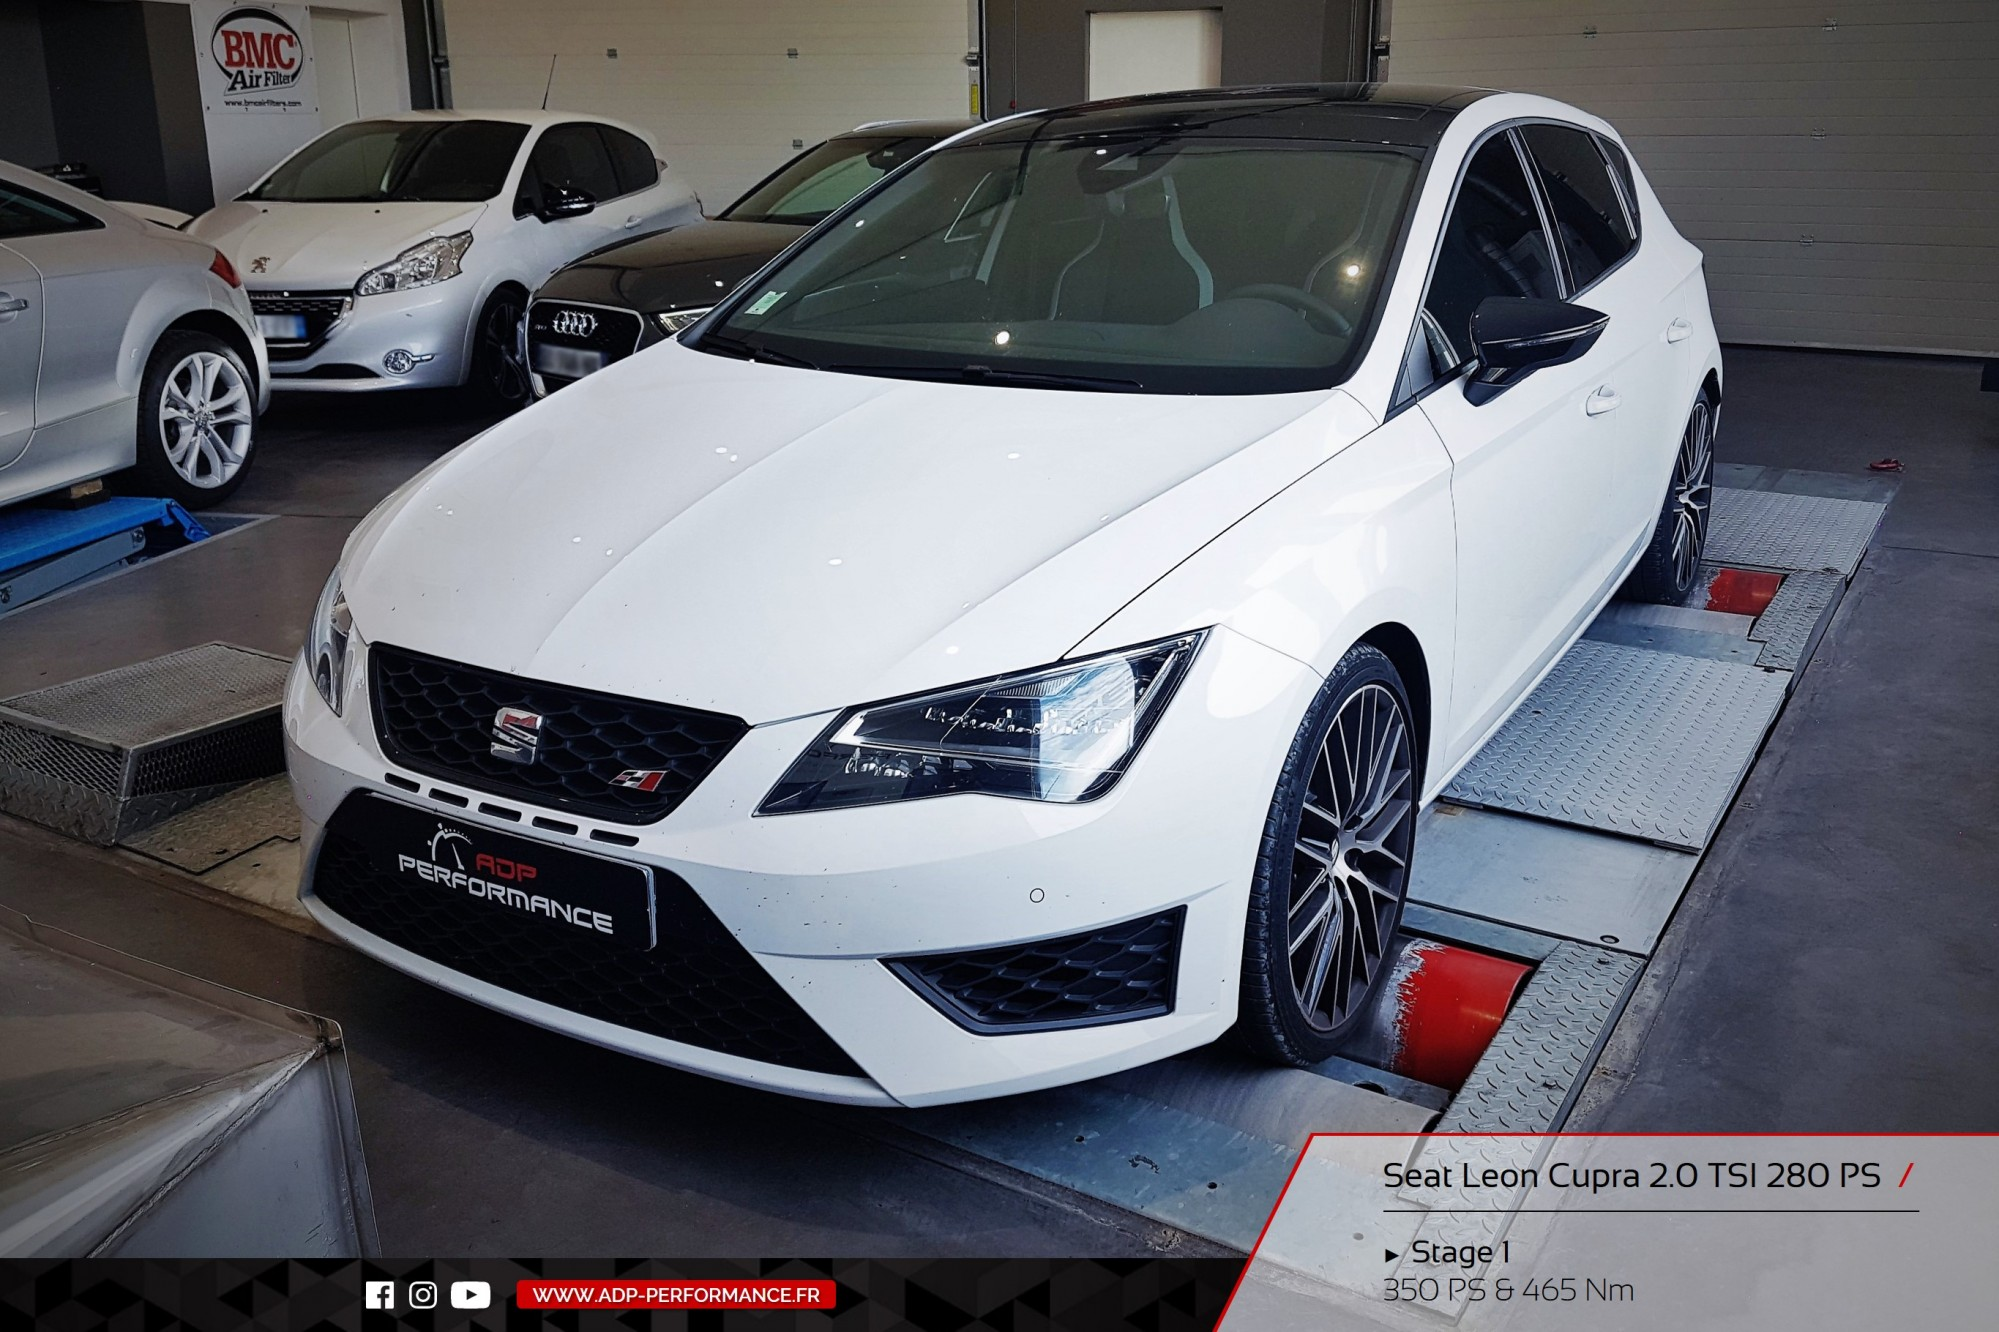 pr paration seat leon cupra 2 0 tsi montpellier realisations reprogrammation auto sur. Black Bedroom Furniture Sets. Home Design Ideas